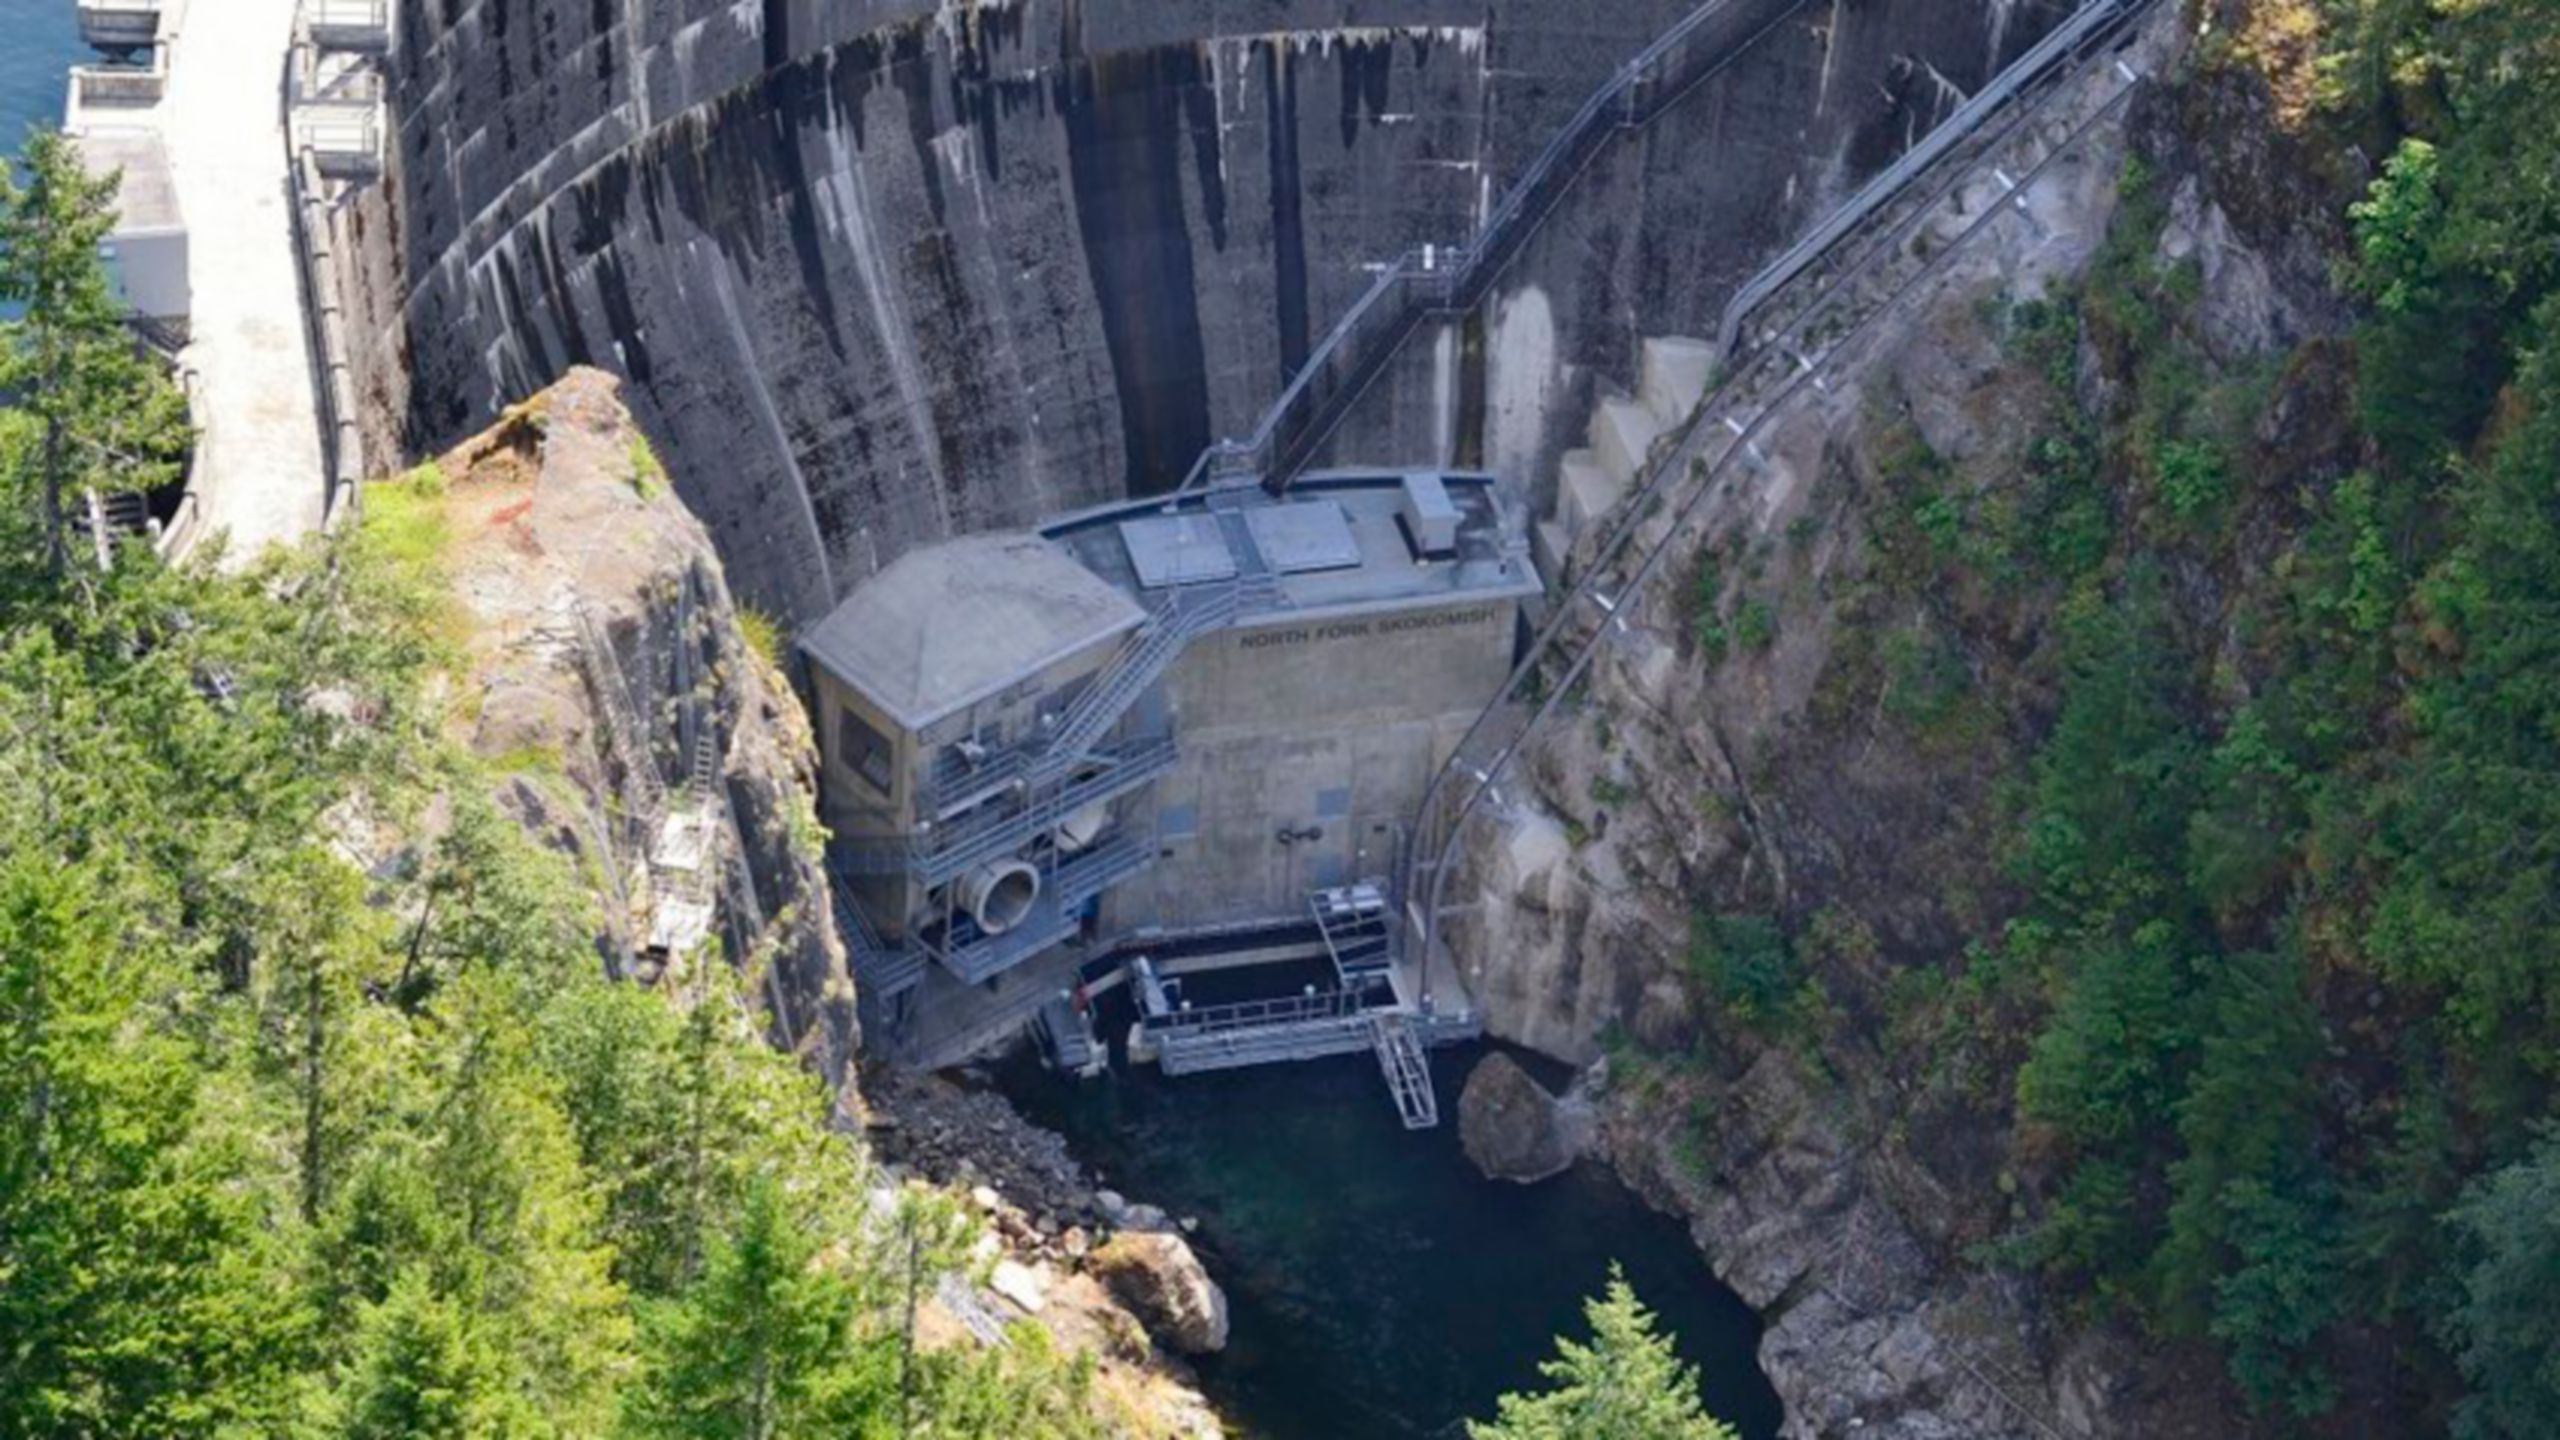 Dam at Cushman Project #2 for Tacoma Public Utilities from World Wind Helicopters AS260B, August 9, 2013